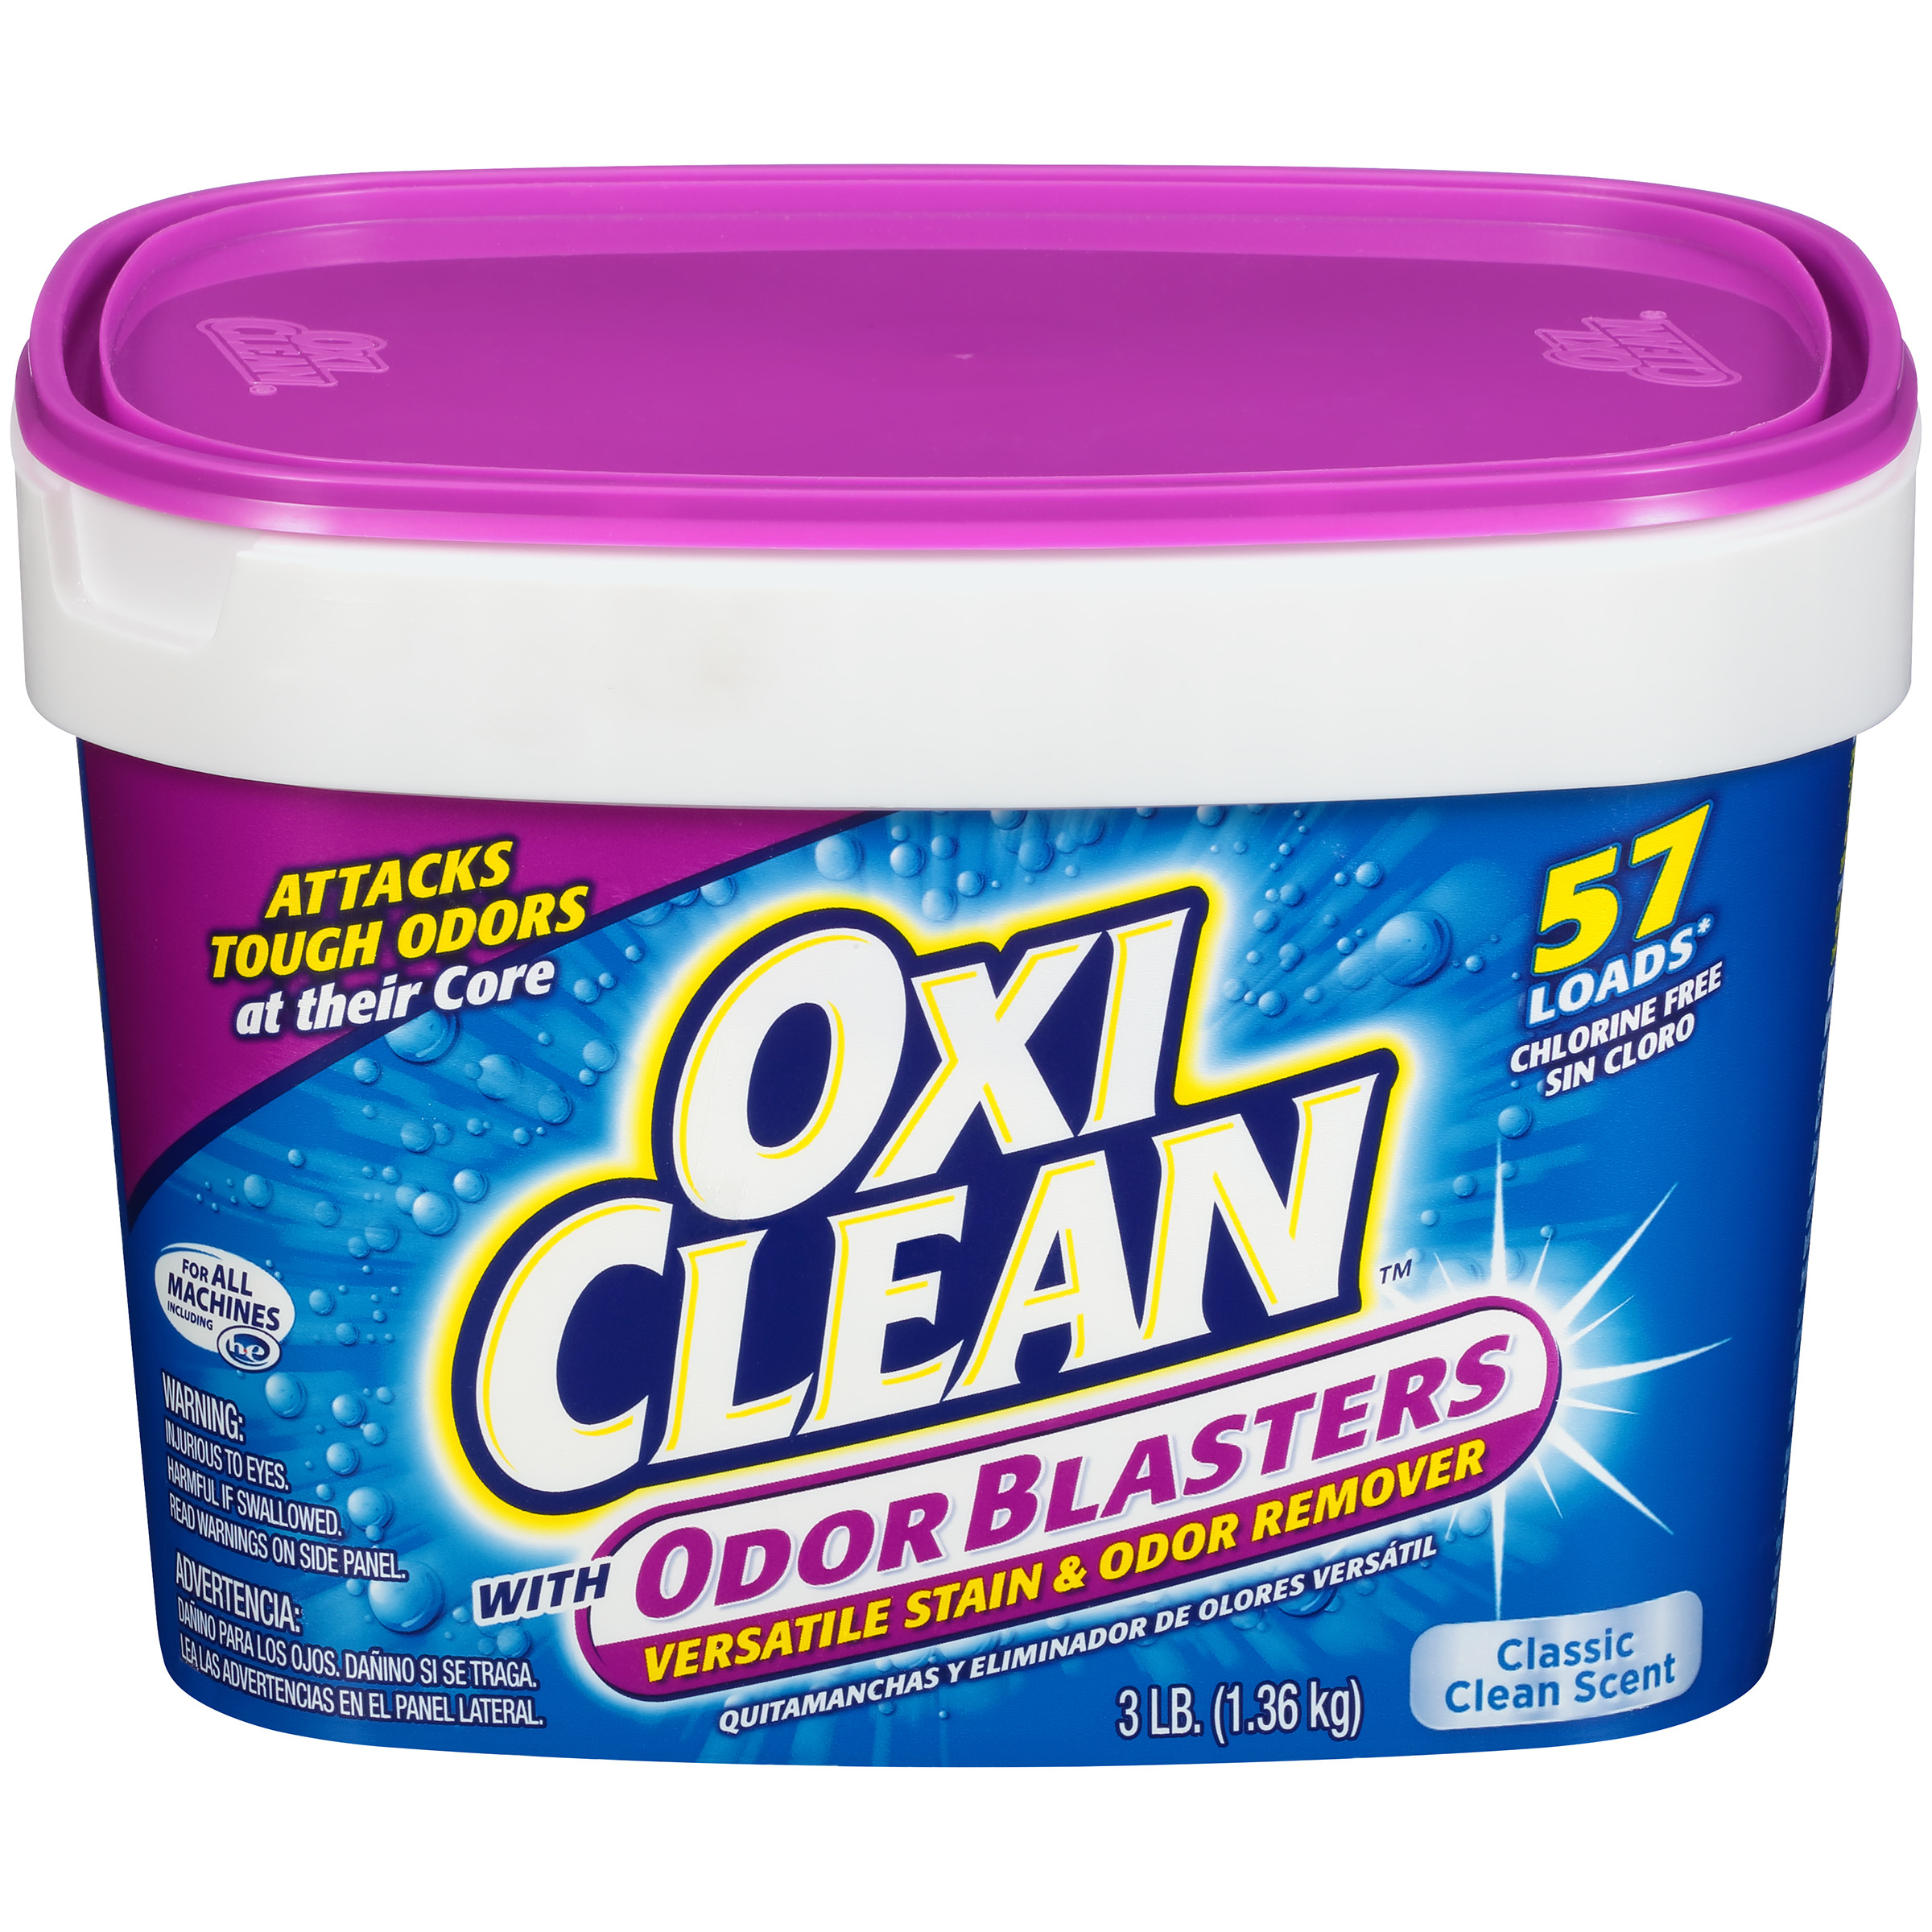 OxiClean Odor Blasters Versatile Stain Remover, 3 lb